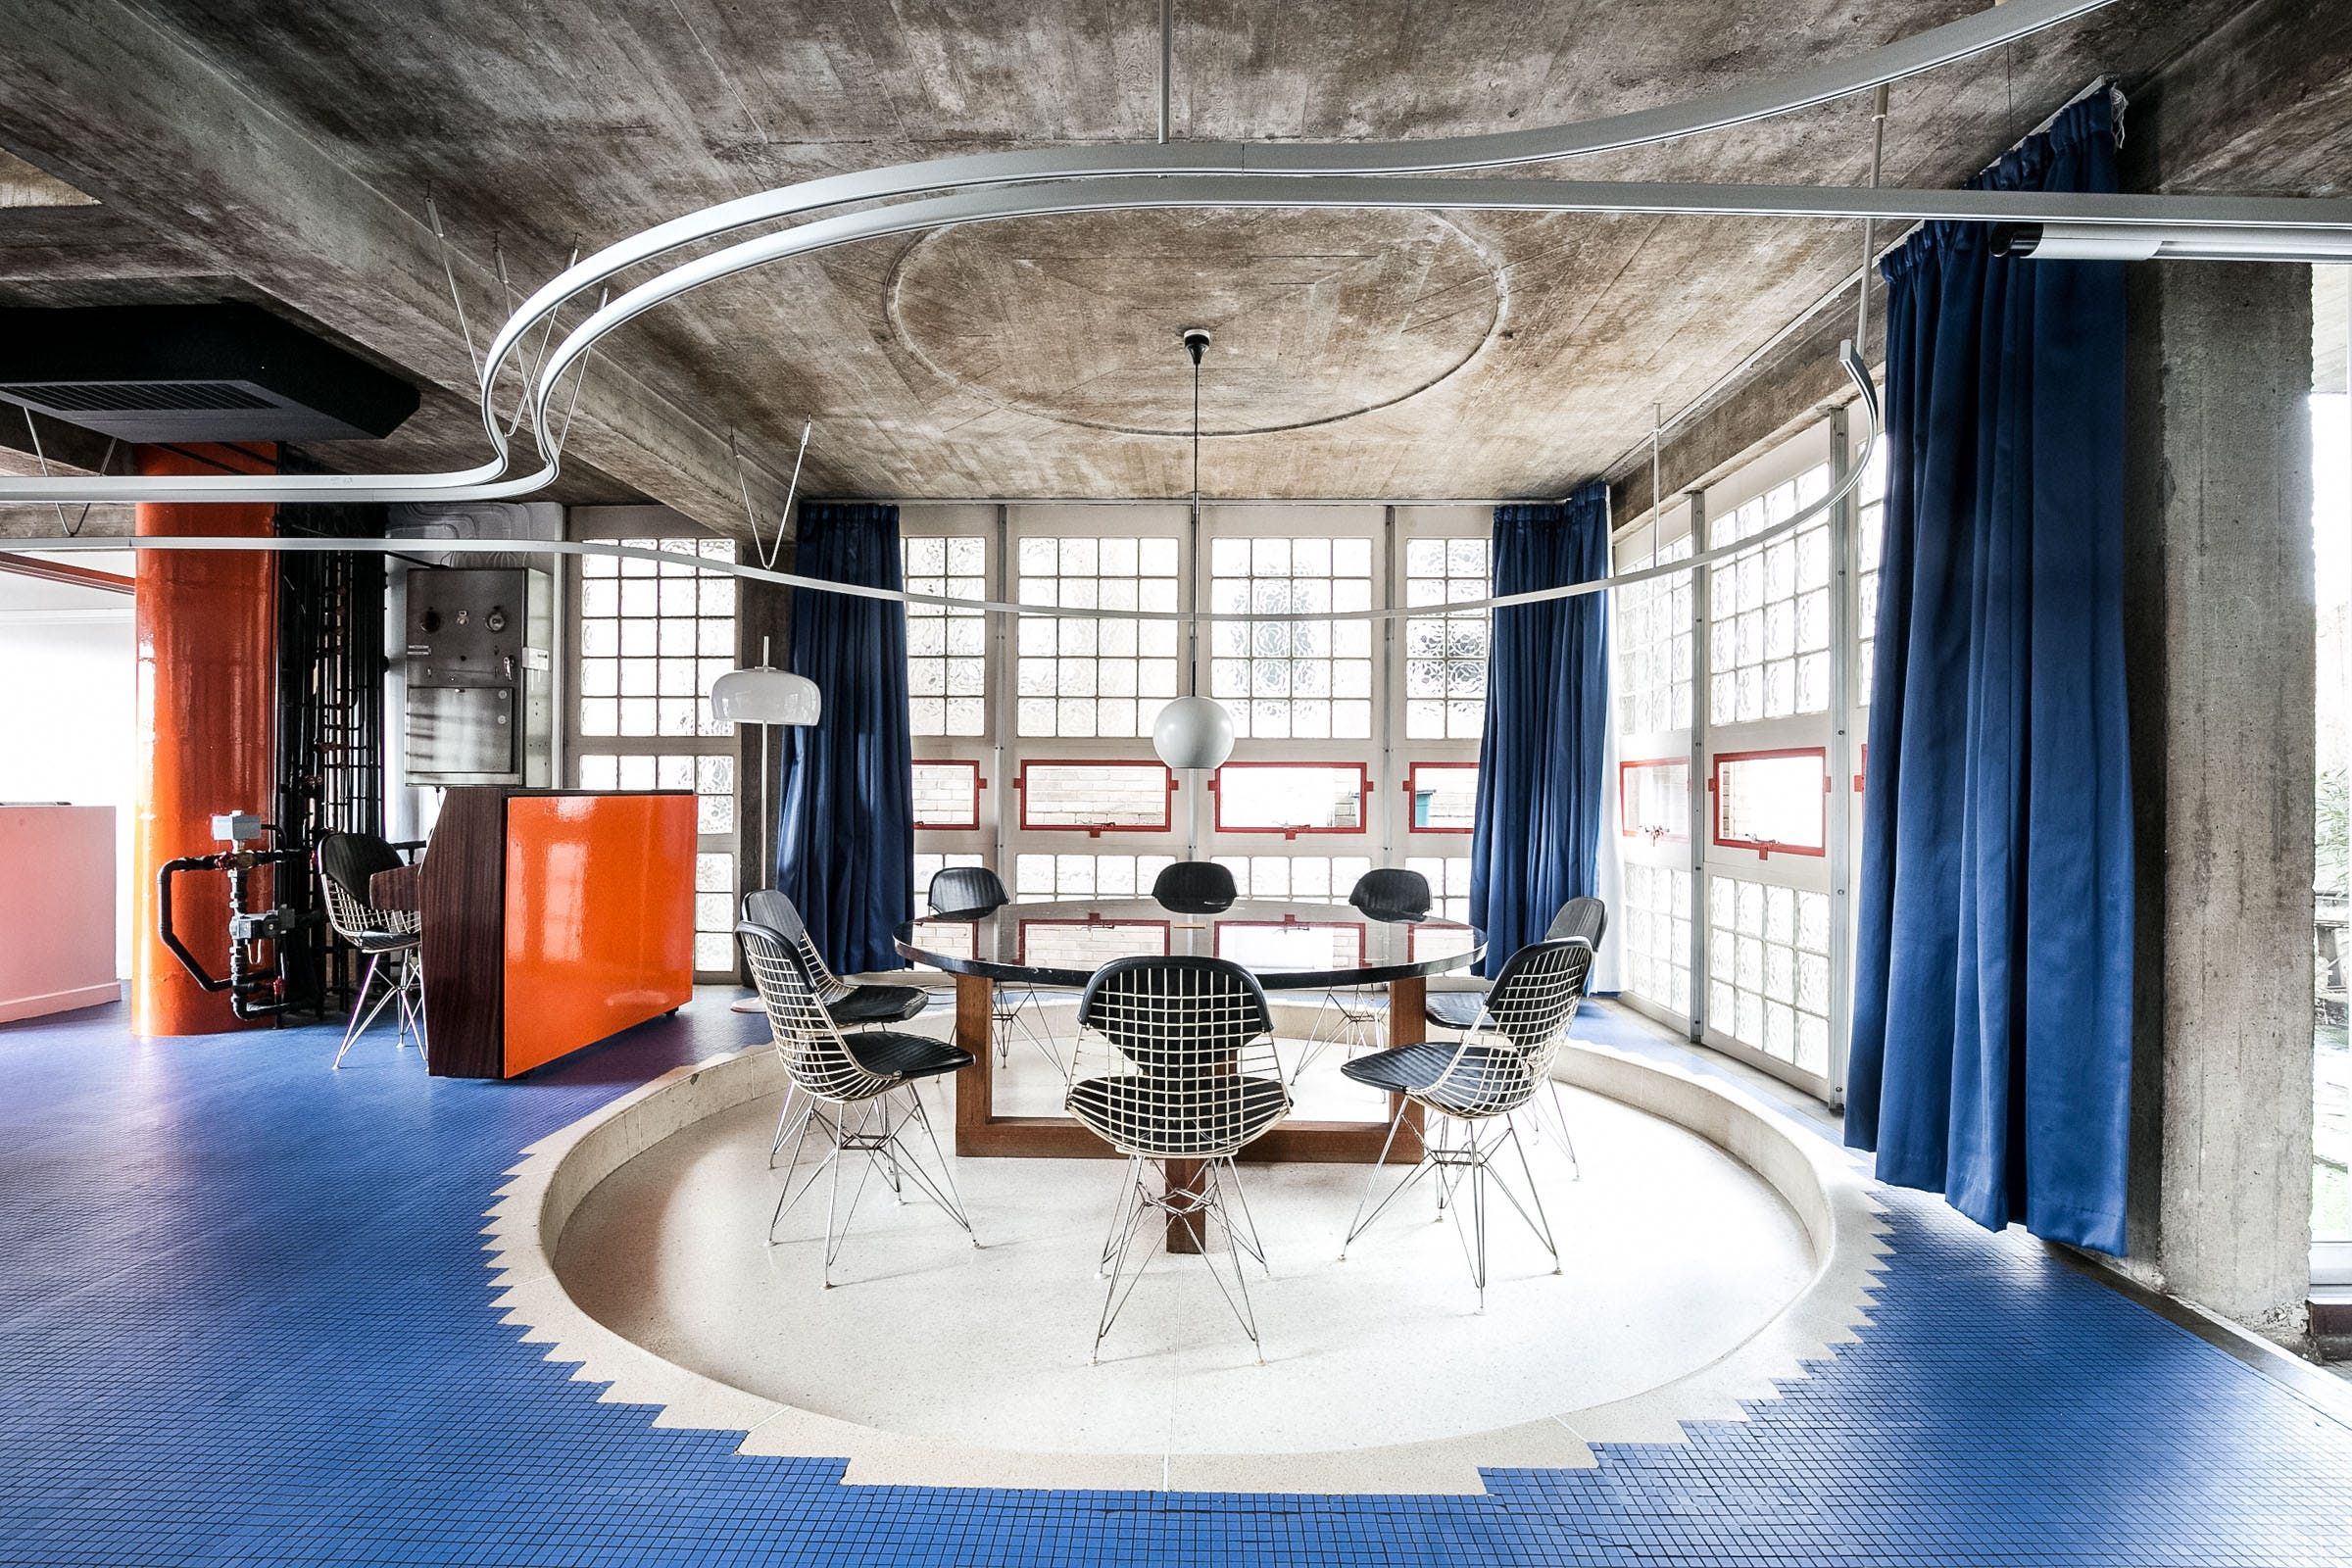 5 Dream Homes For Those Who Like Untouched Retro Style